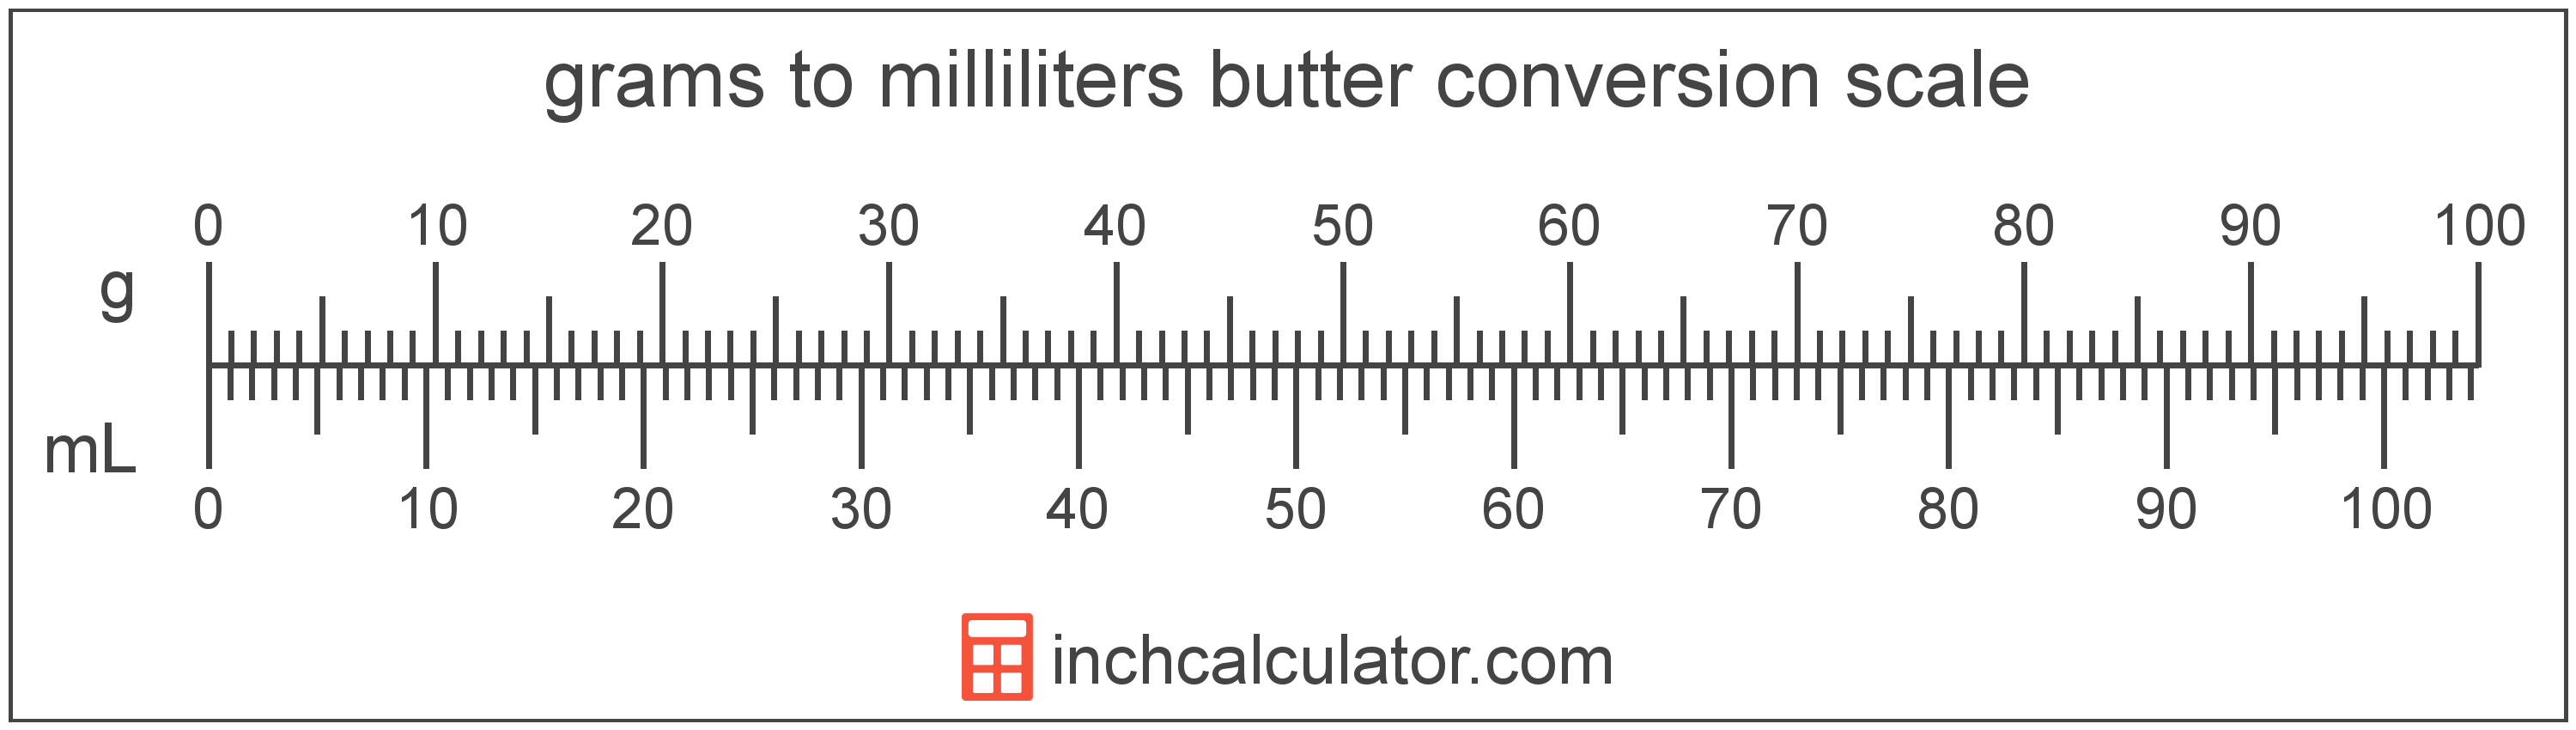 conversion scale showing milliliters and equivalent grams butter values